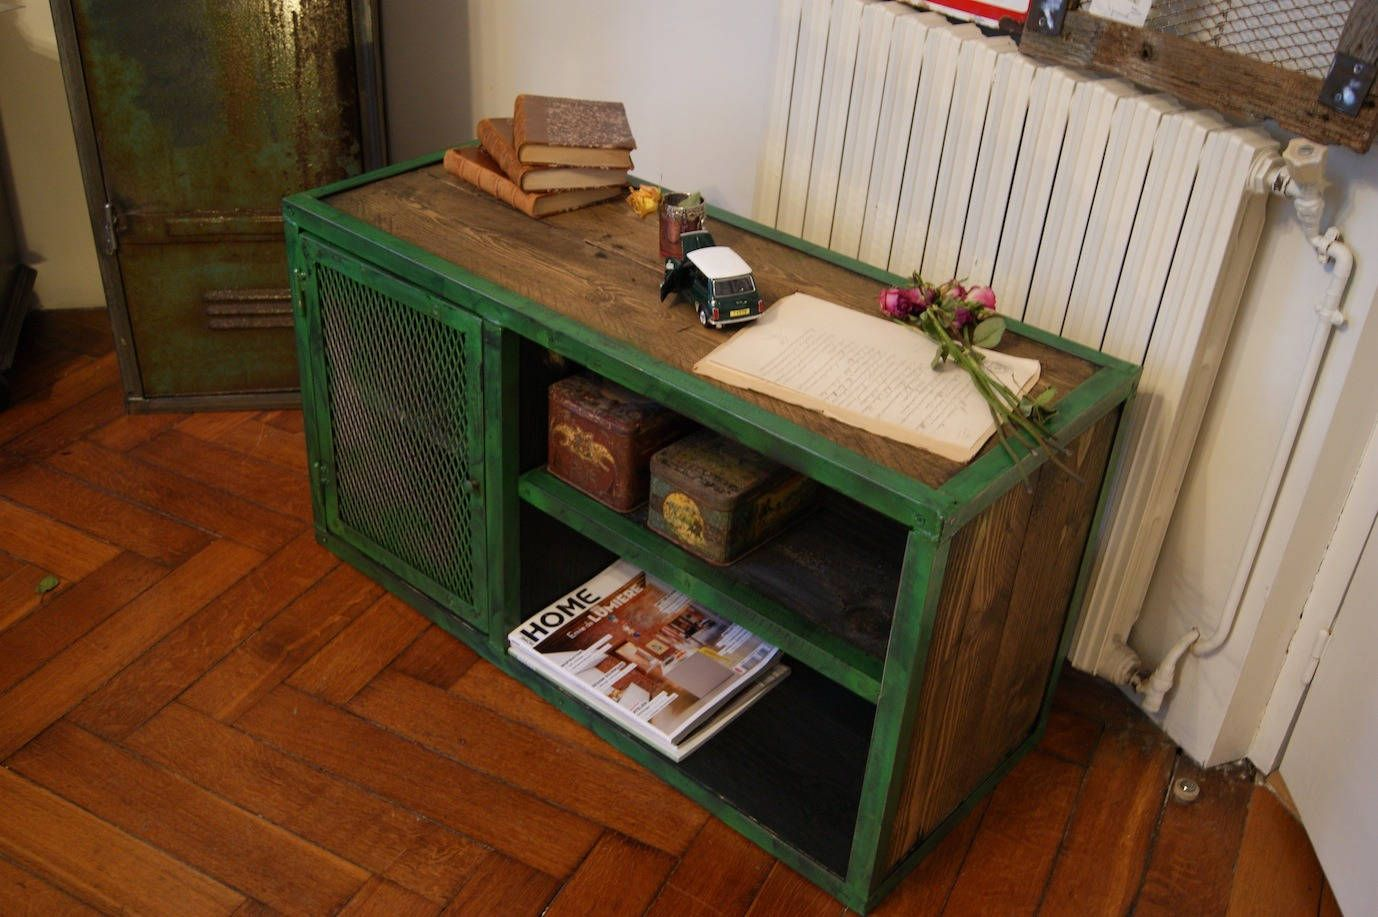 Meuble Industriel Vert Industrial Furniture Wood And Steel Meubles Industrial